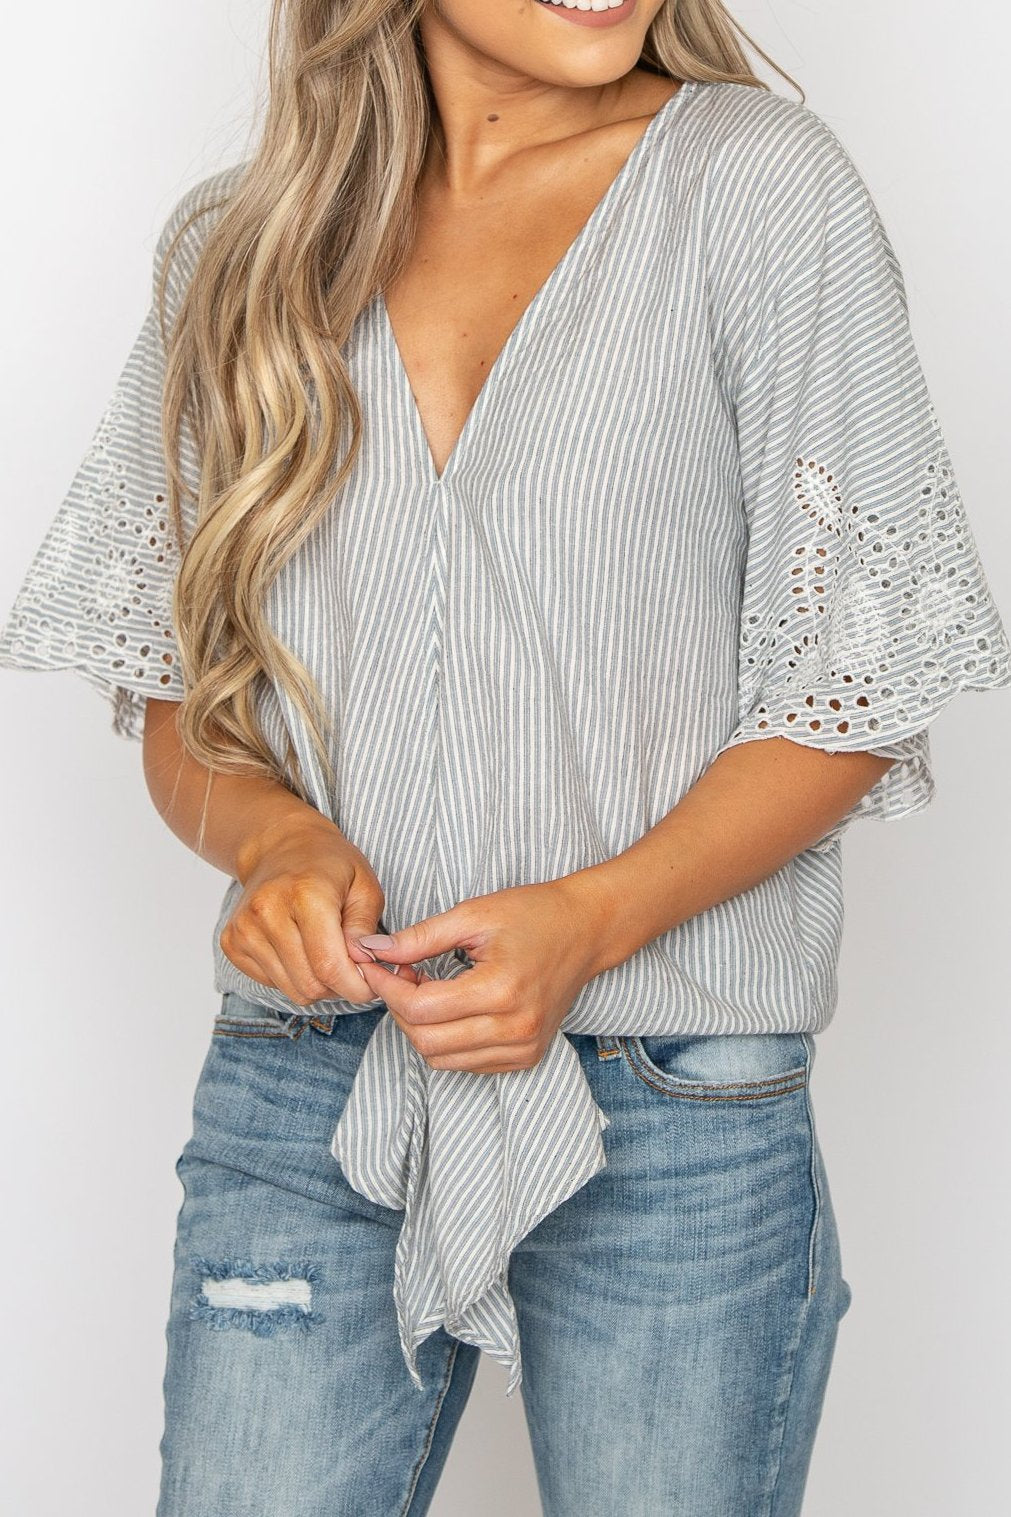 Boardwalk Blouse